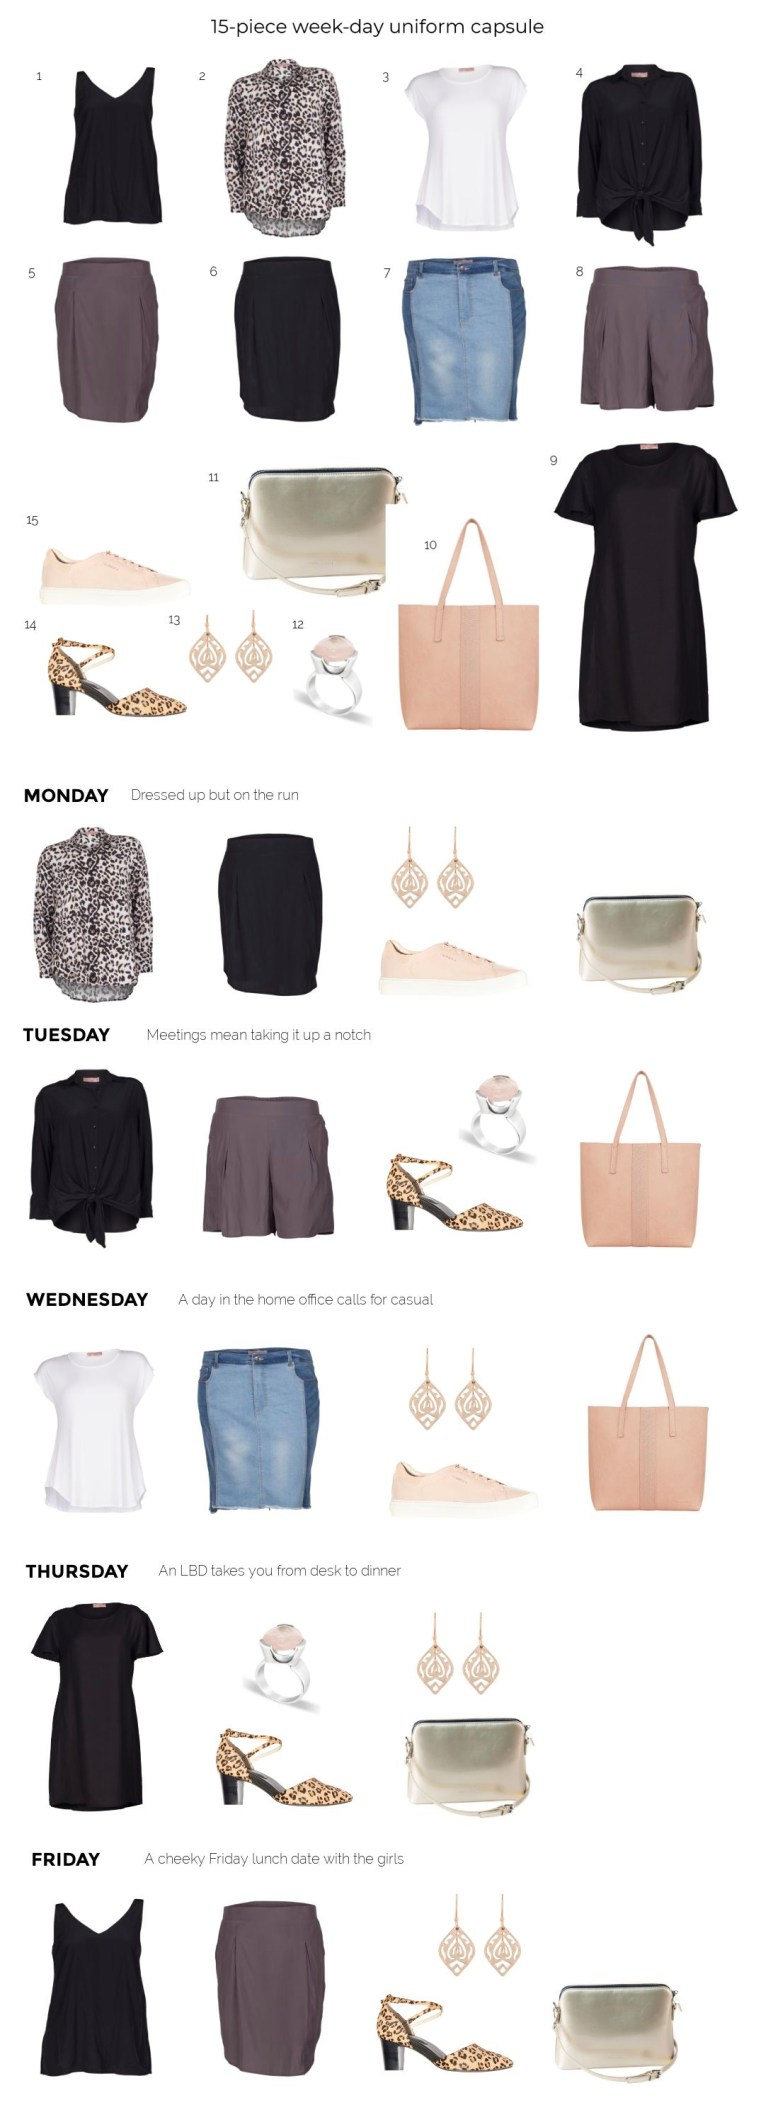 15-piece week-day uniform capsule | Styling You The Label